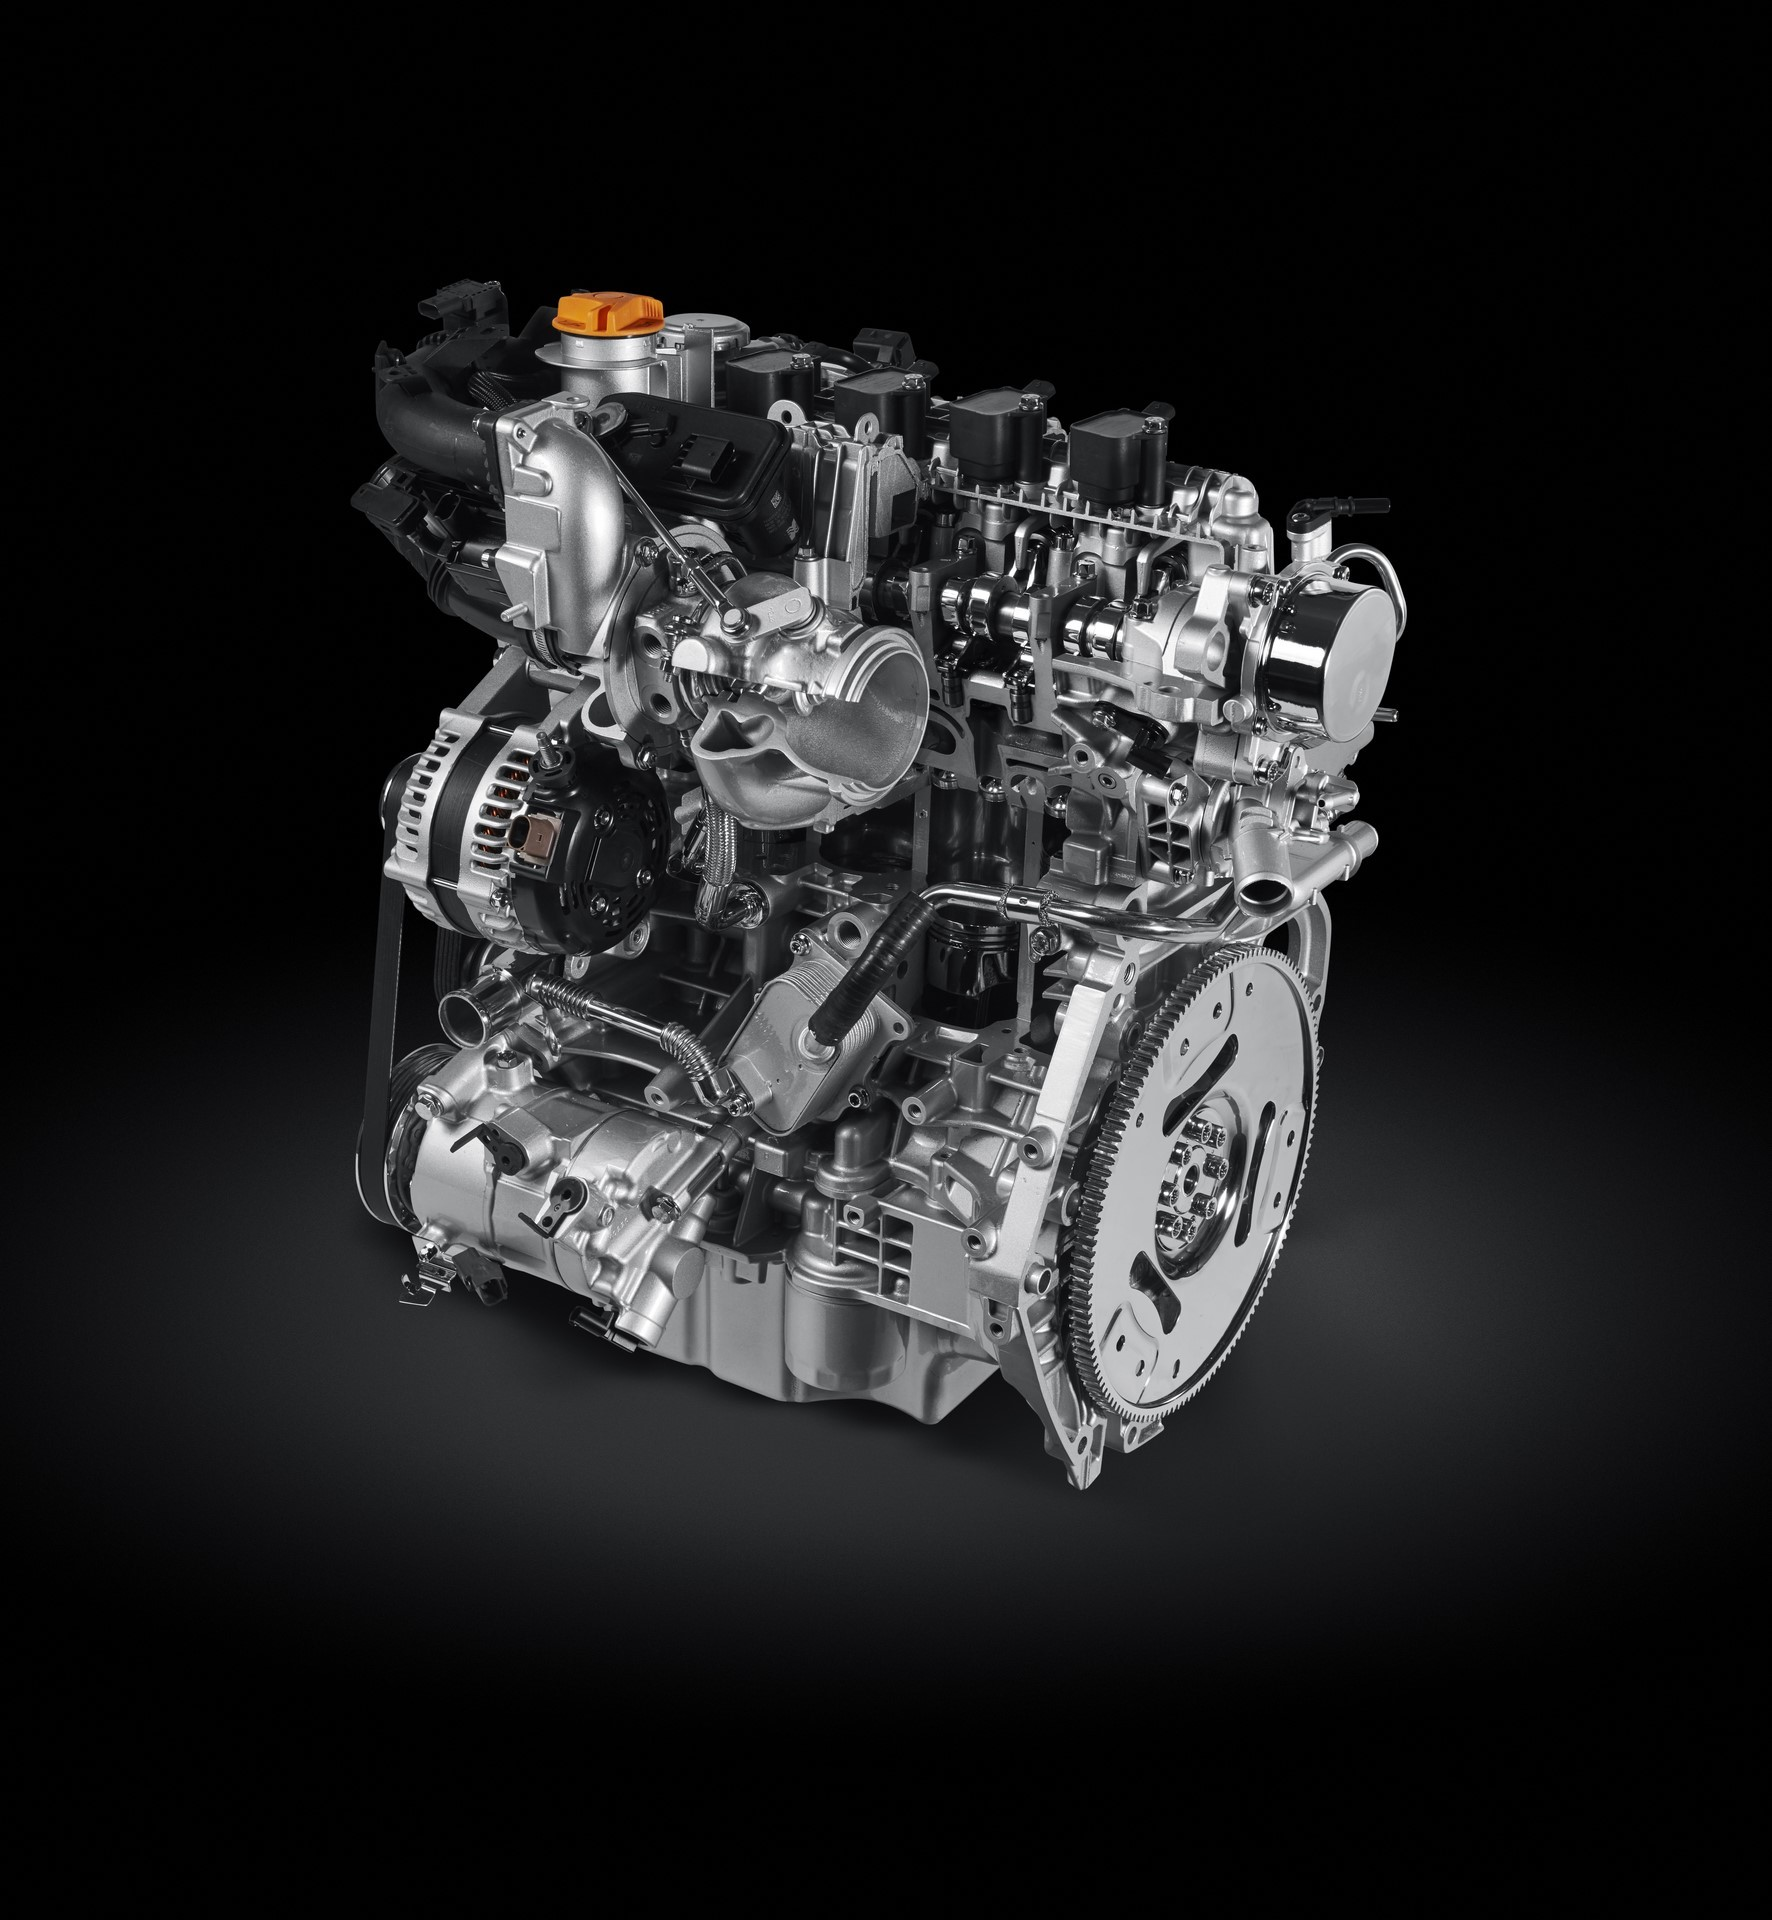 New-13L-Turbo-4-cylinder-150HP_12